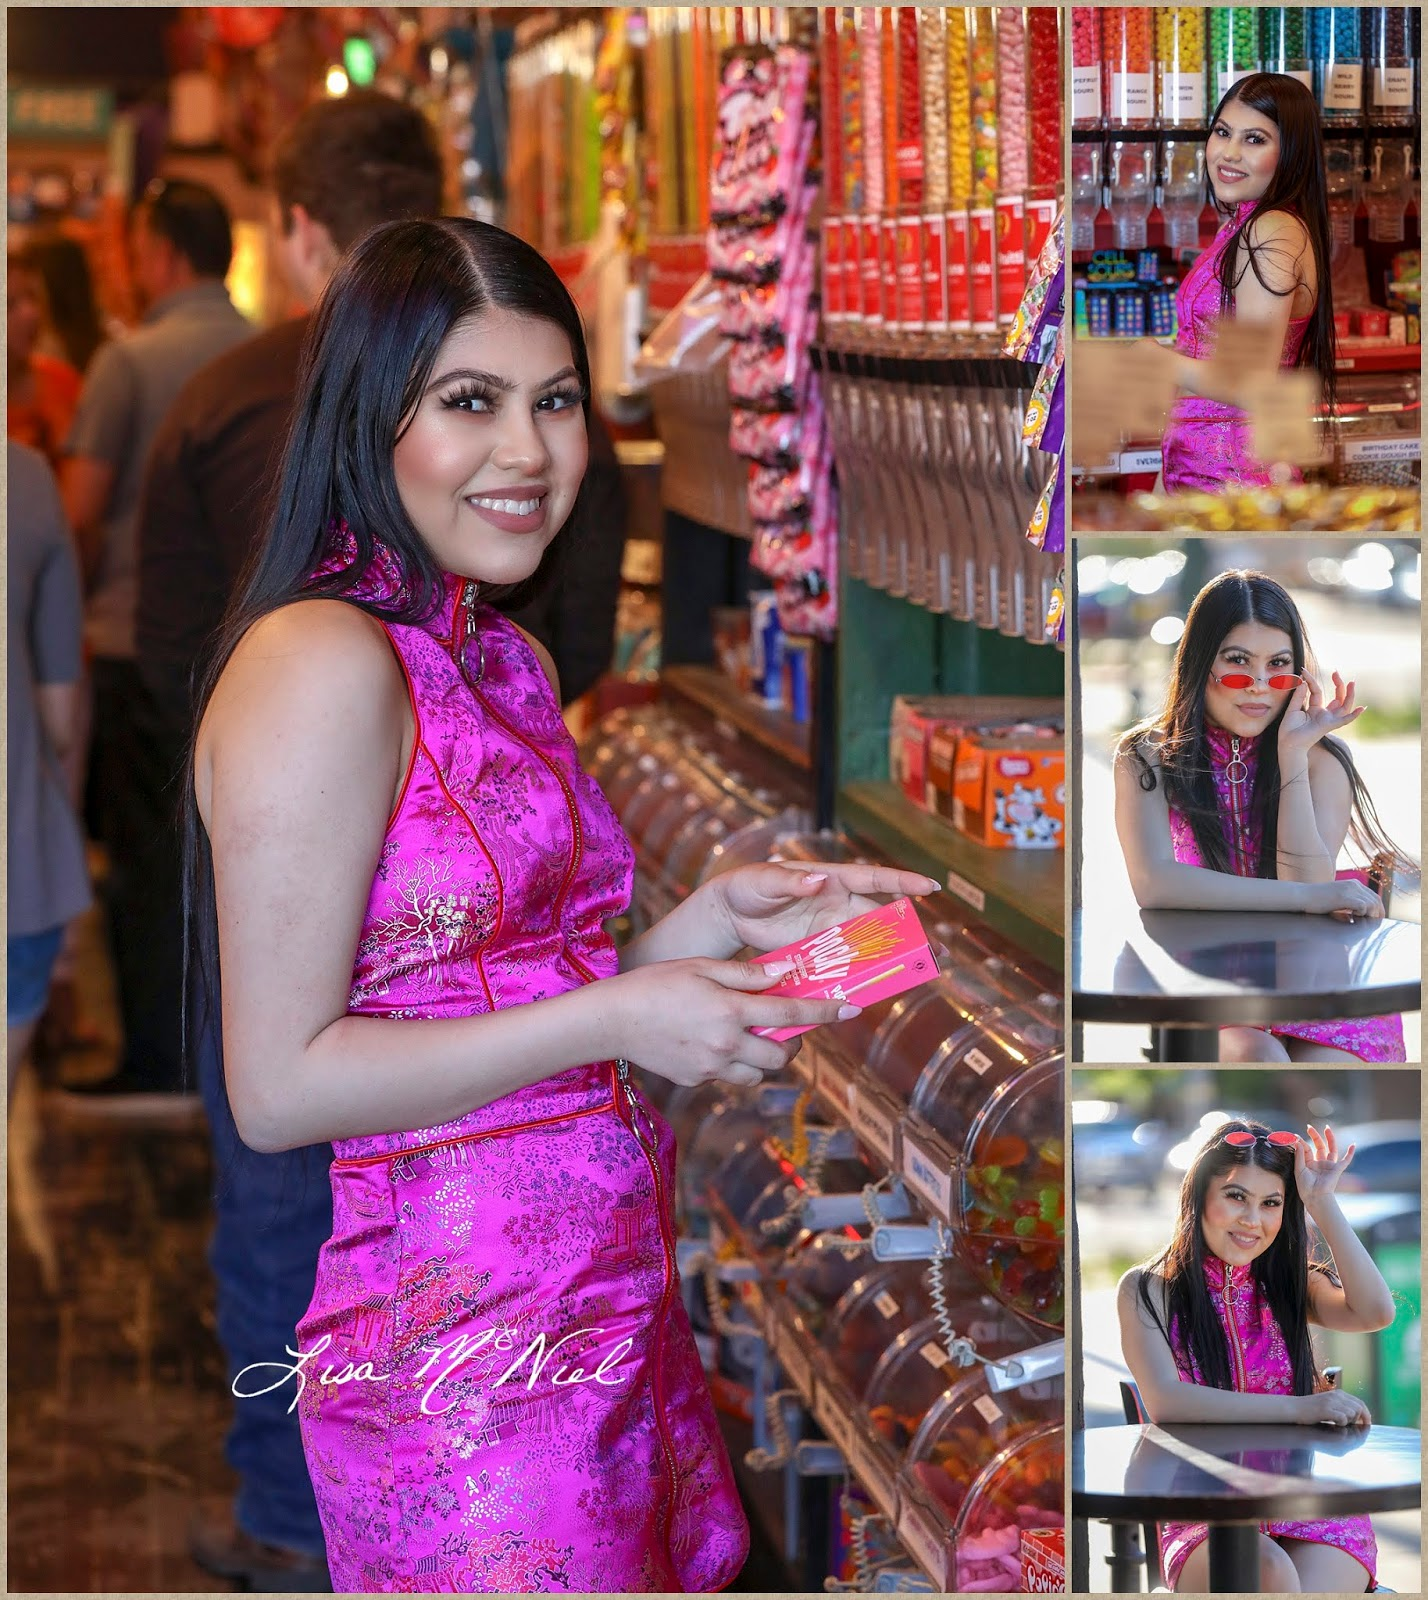 teen girl in candy shop